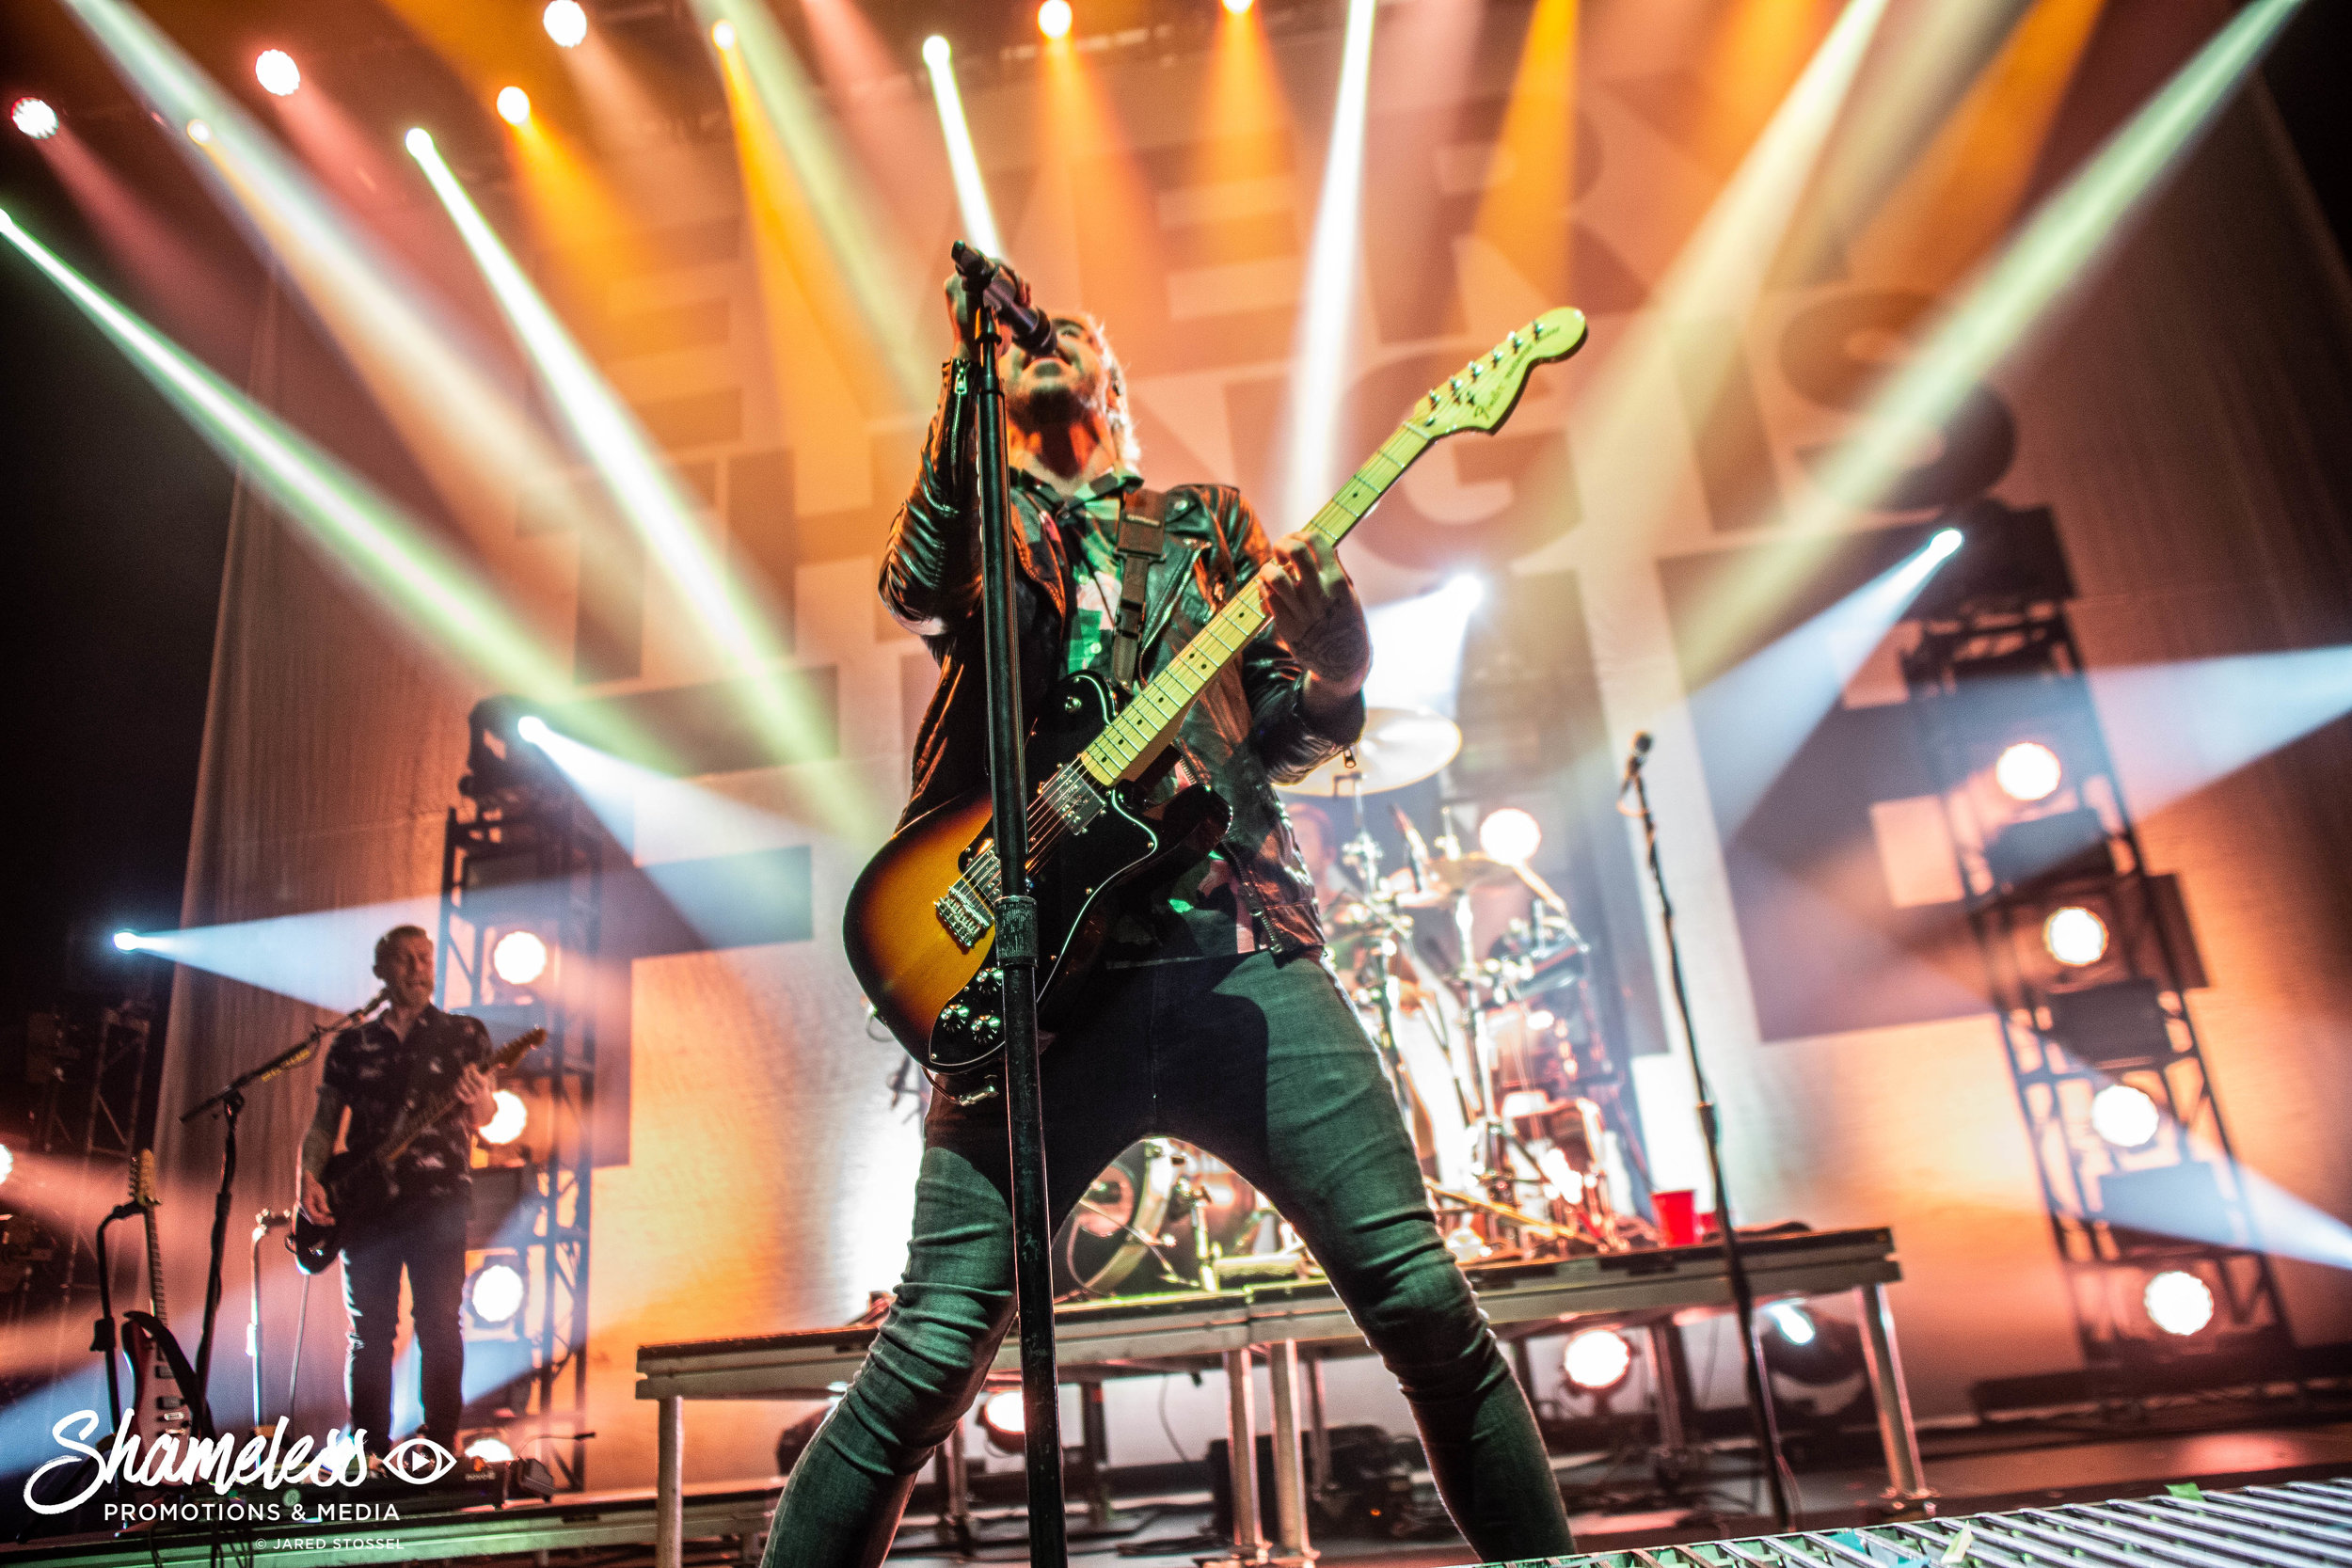 Show Review: All Time Low 'Summer Ever After' Tour - San Francisco